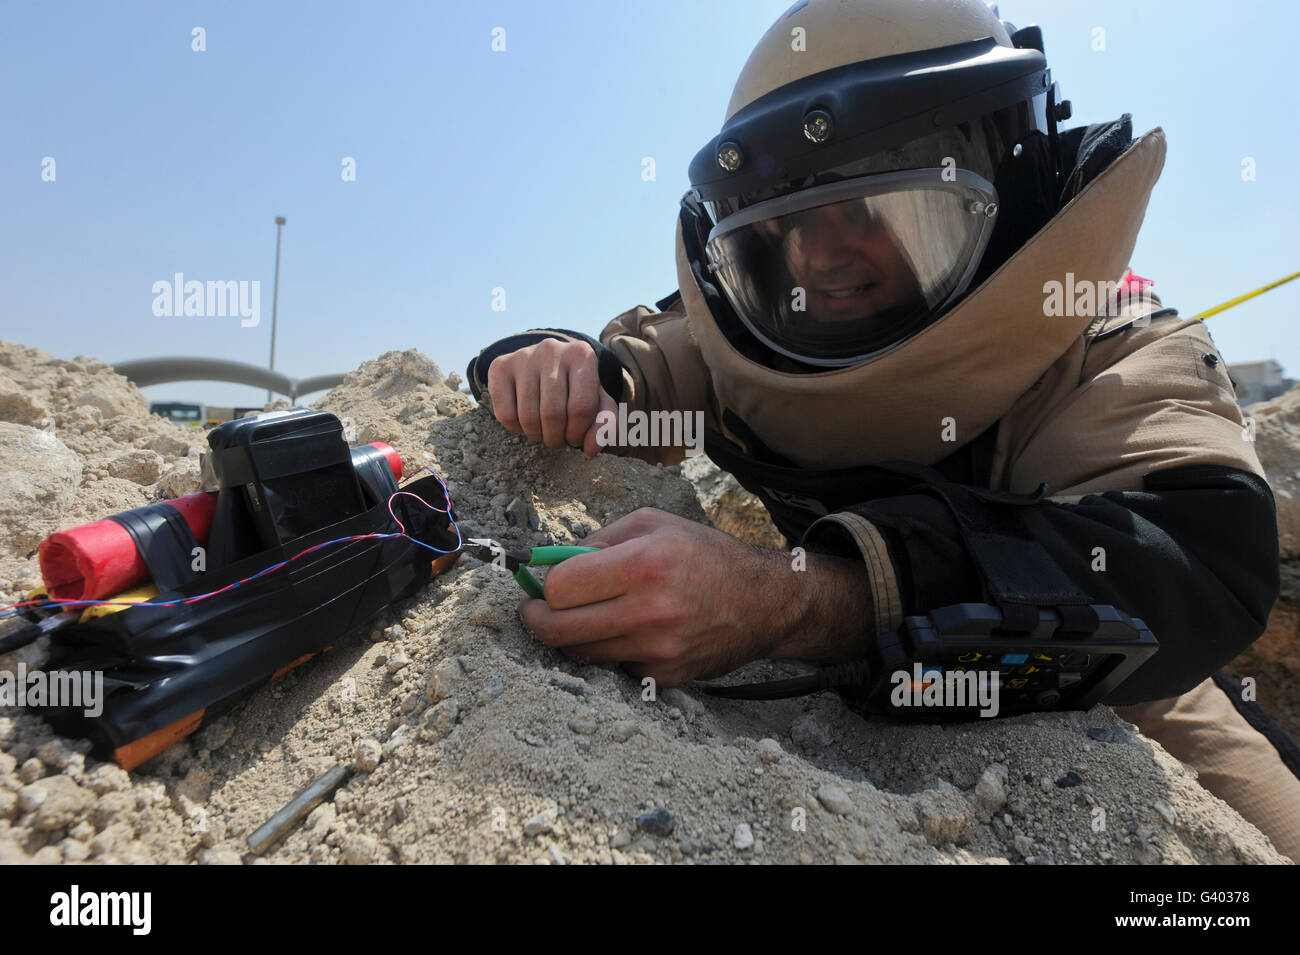 Explosive ordnance disposal technician disables an IED. - Stock Image